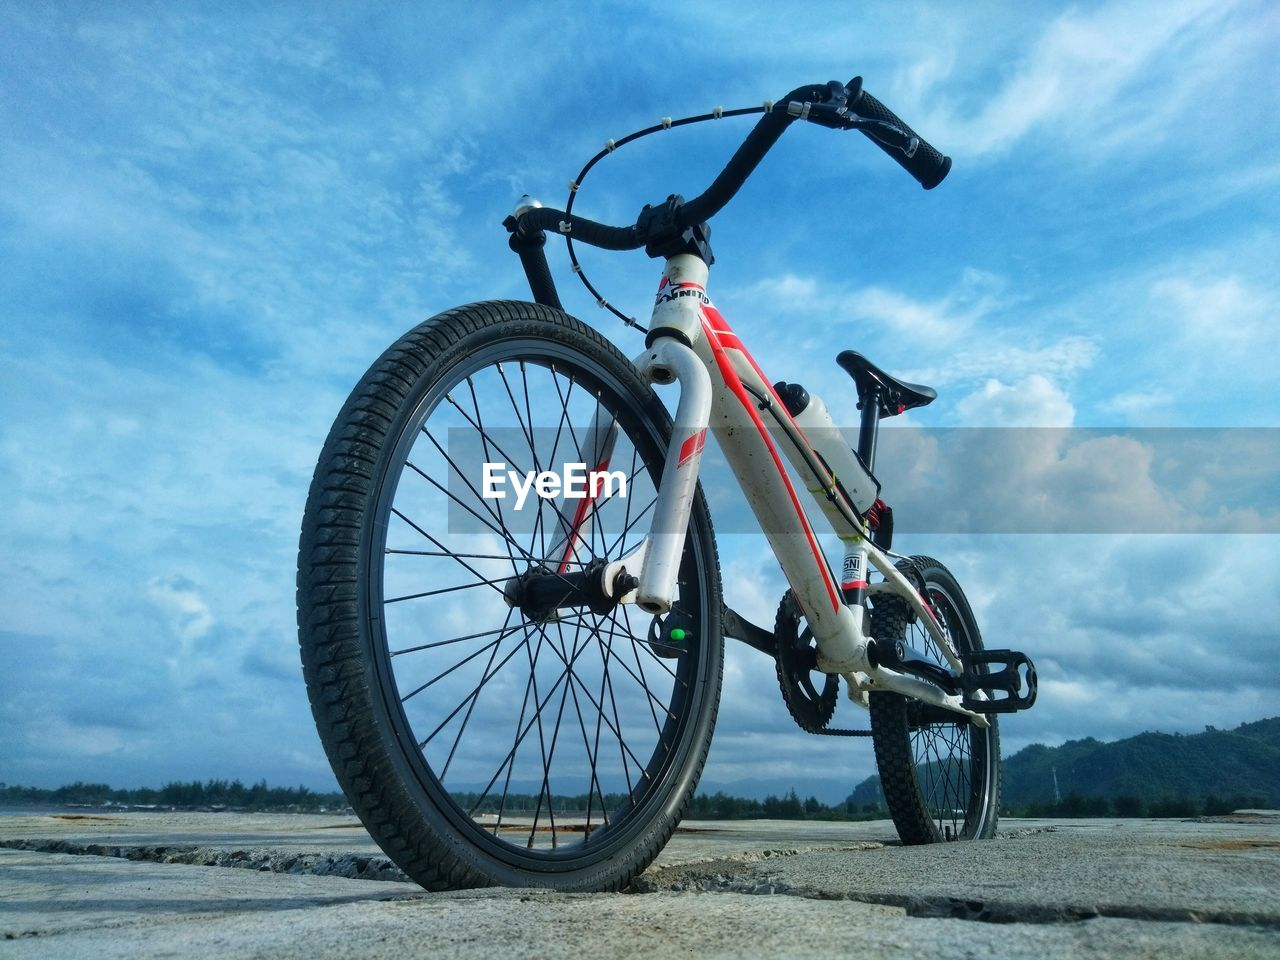 LOW ANGLE VIEW OF BICYCLE WHEEL ON FIELD